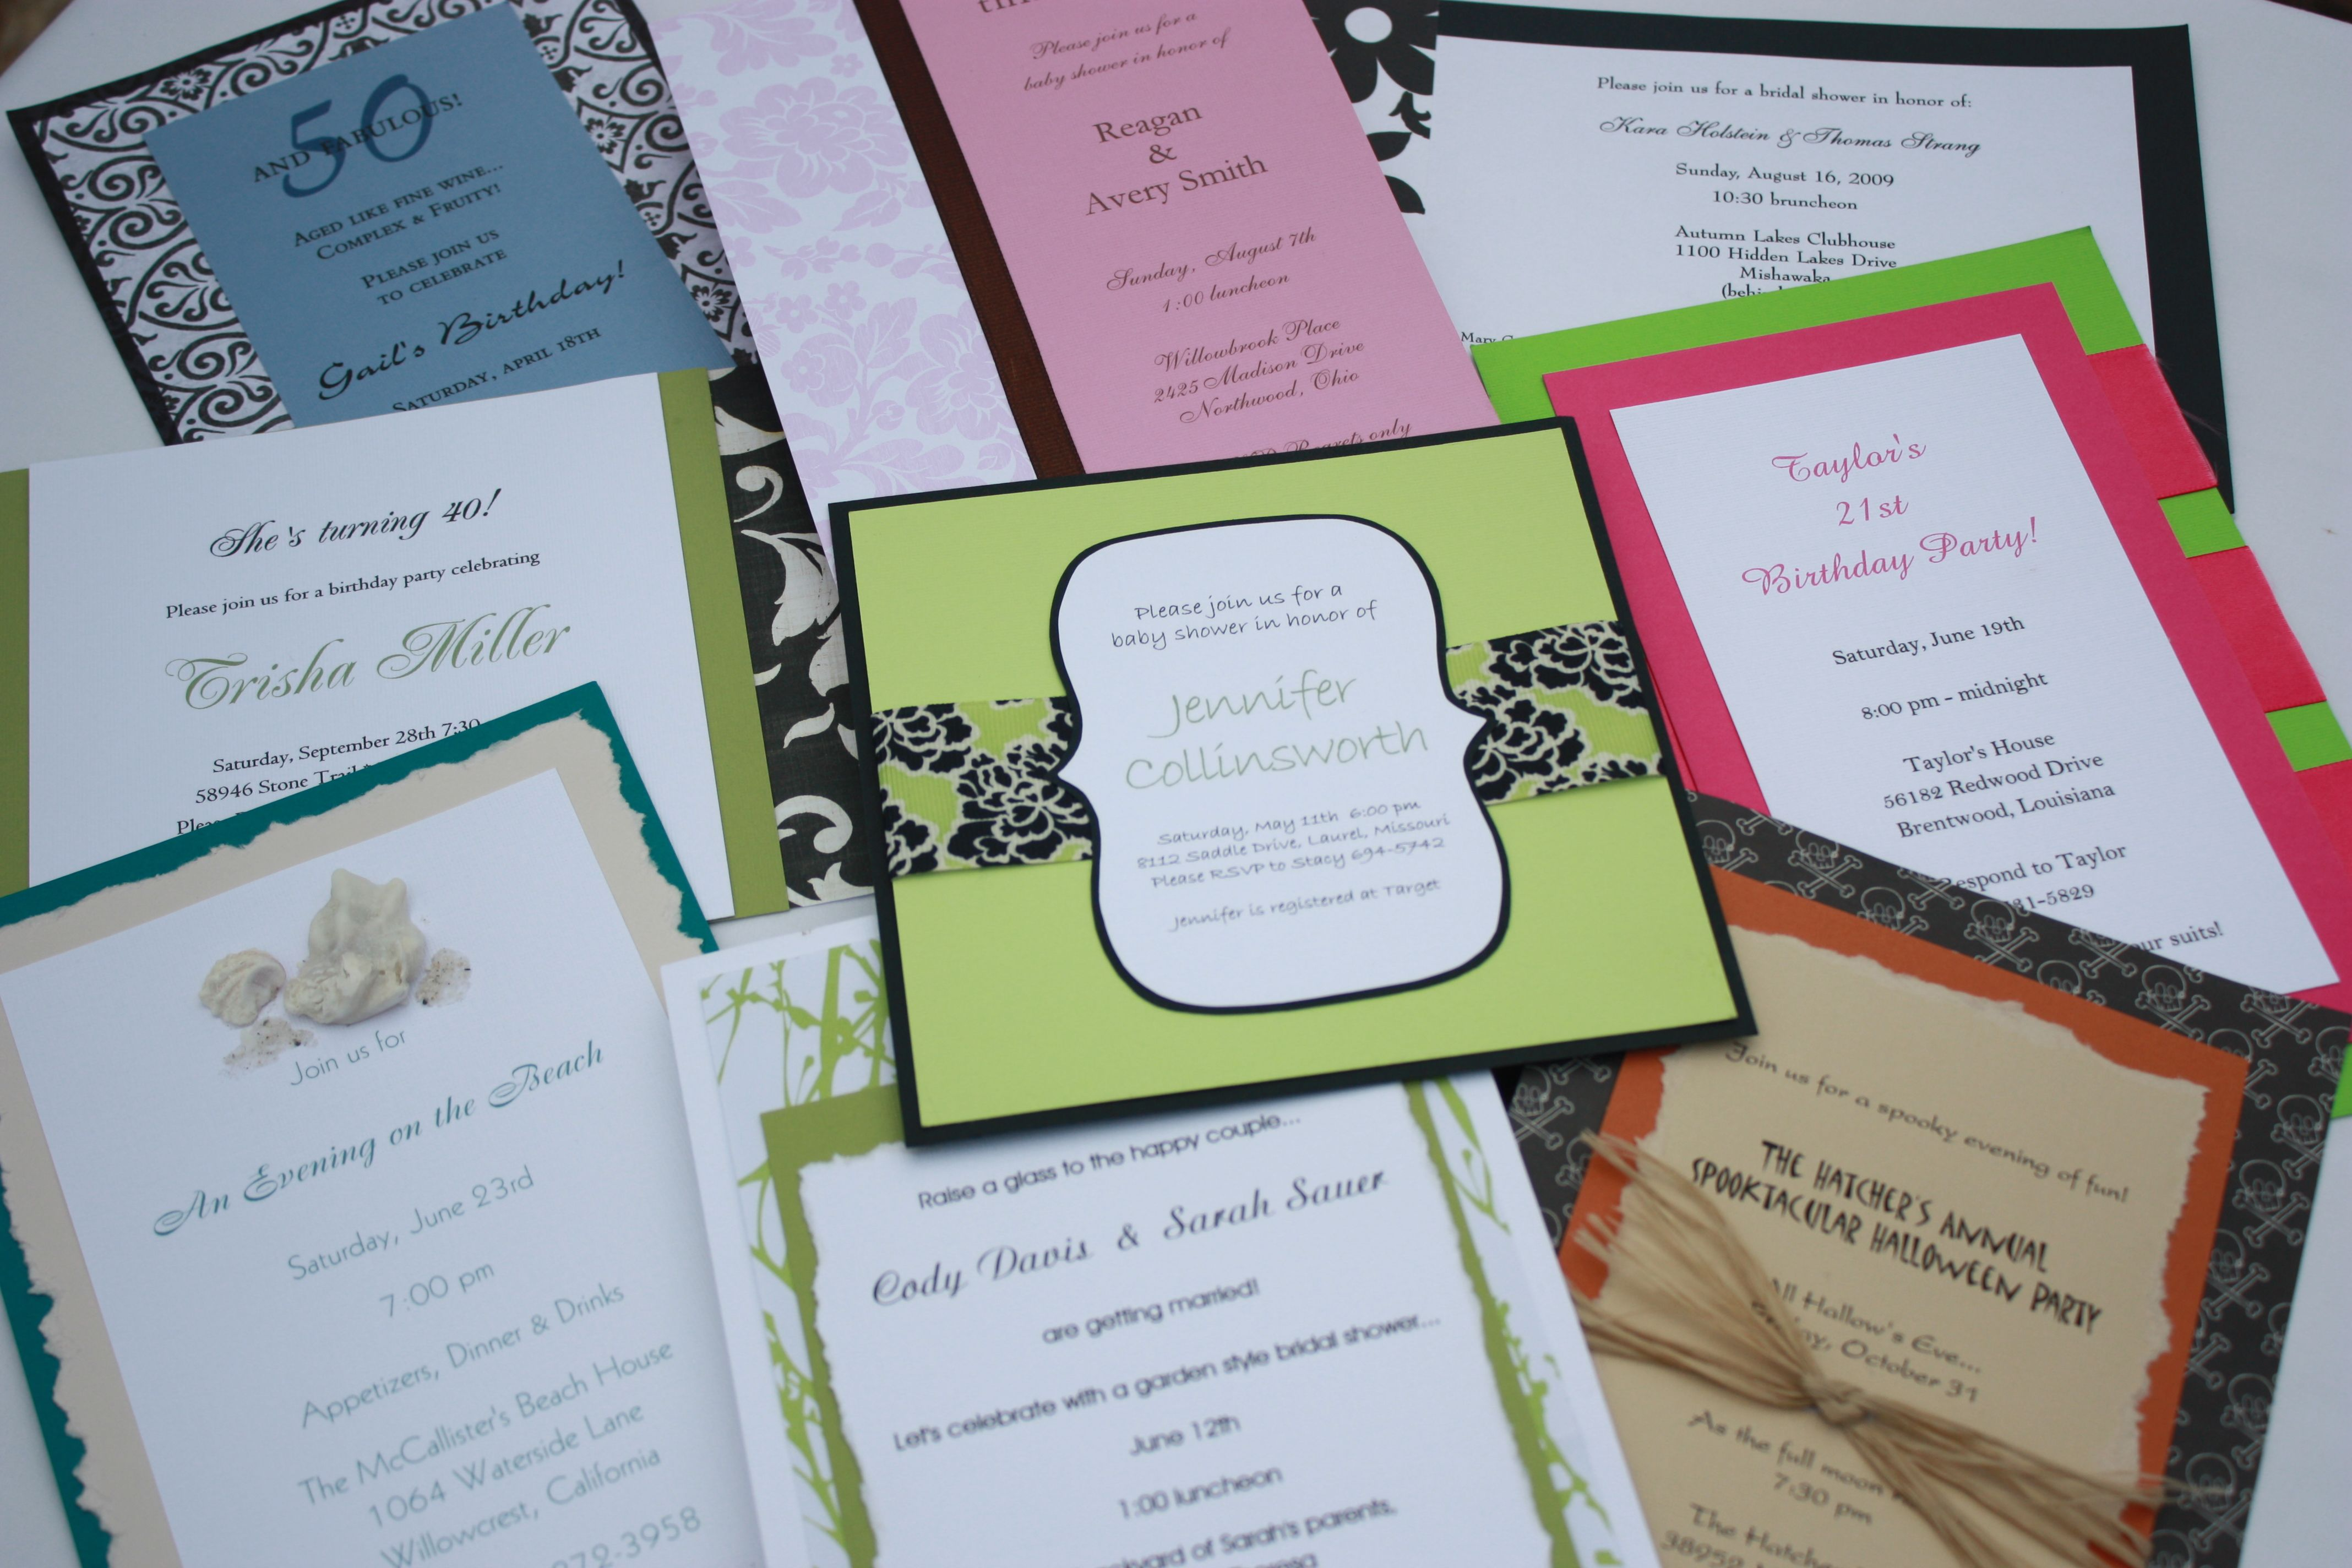 A plethora of homemade invitations